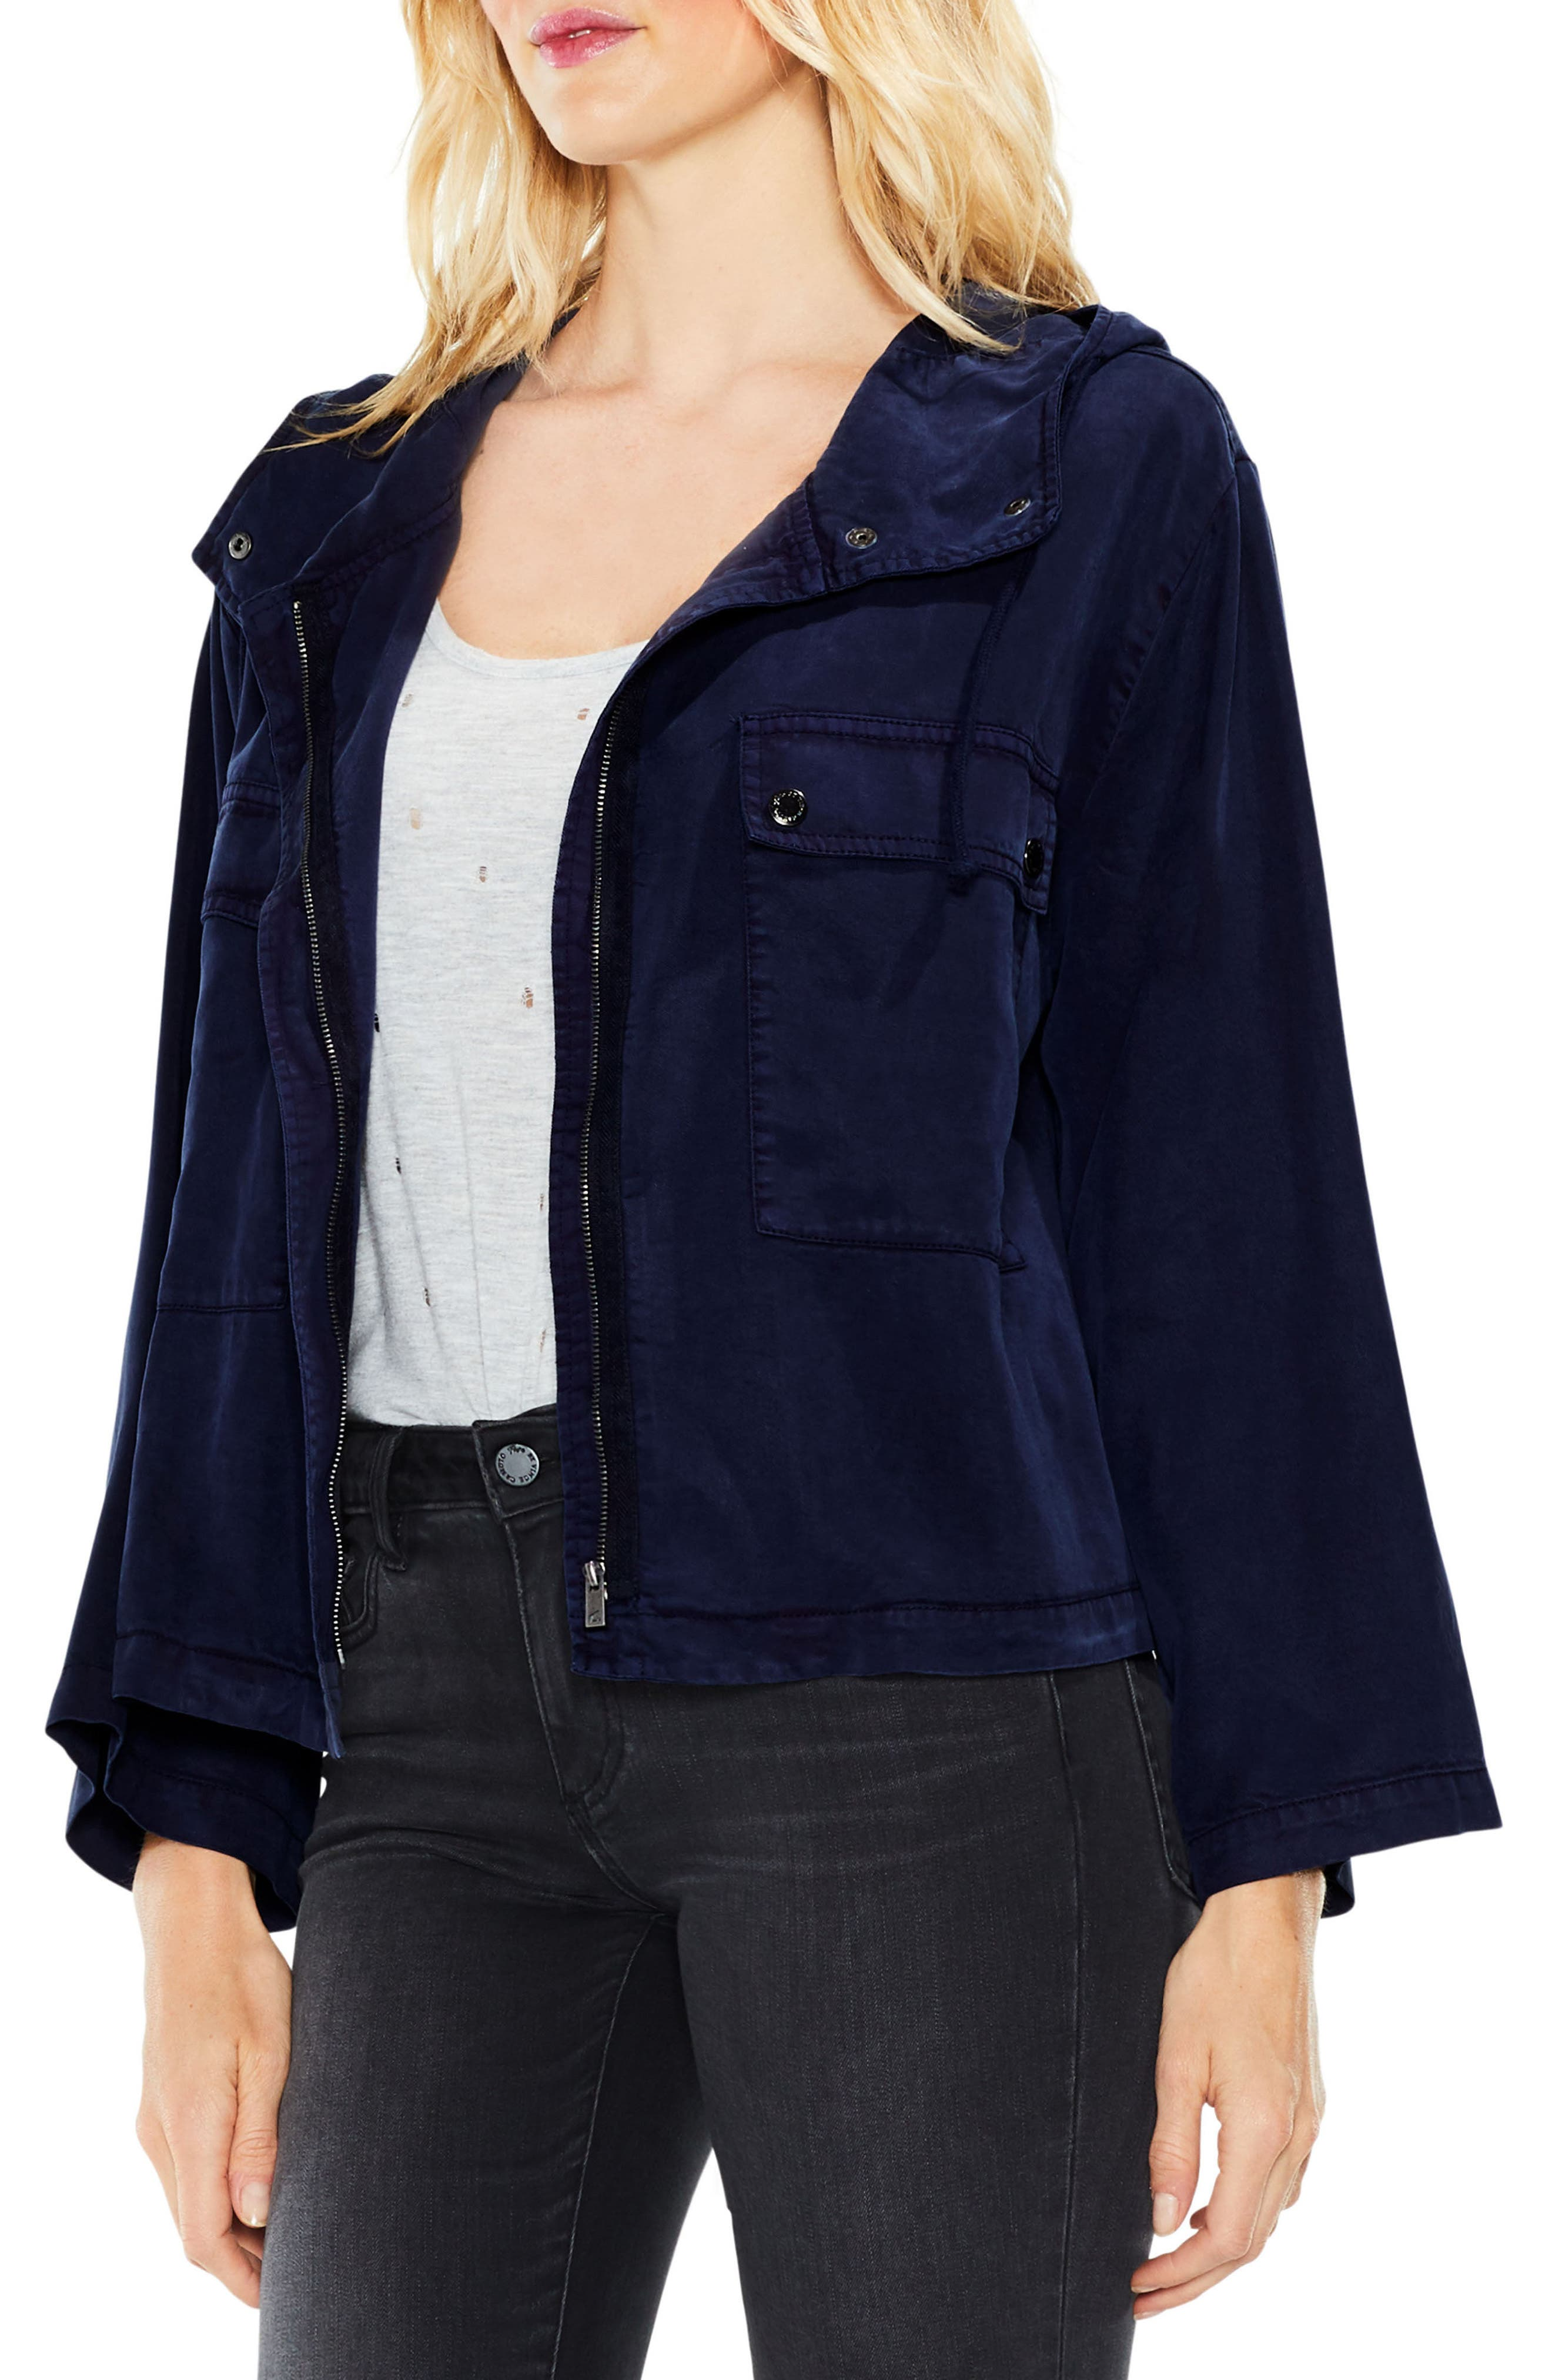 Alternate Image 1 Selected - Two by Vince Camuto Bell Sleeve Hooded Jacket